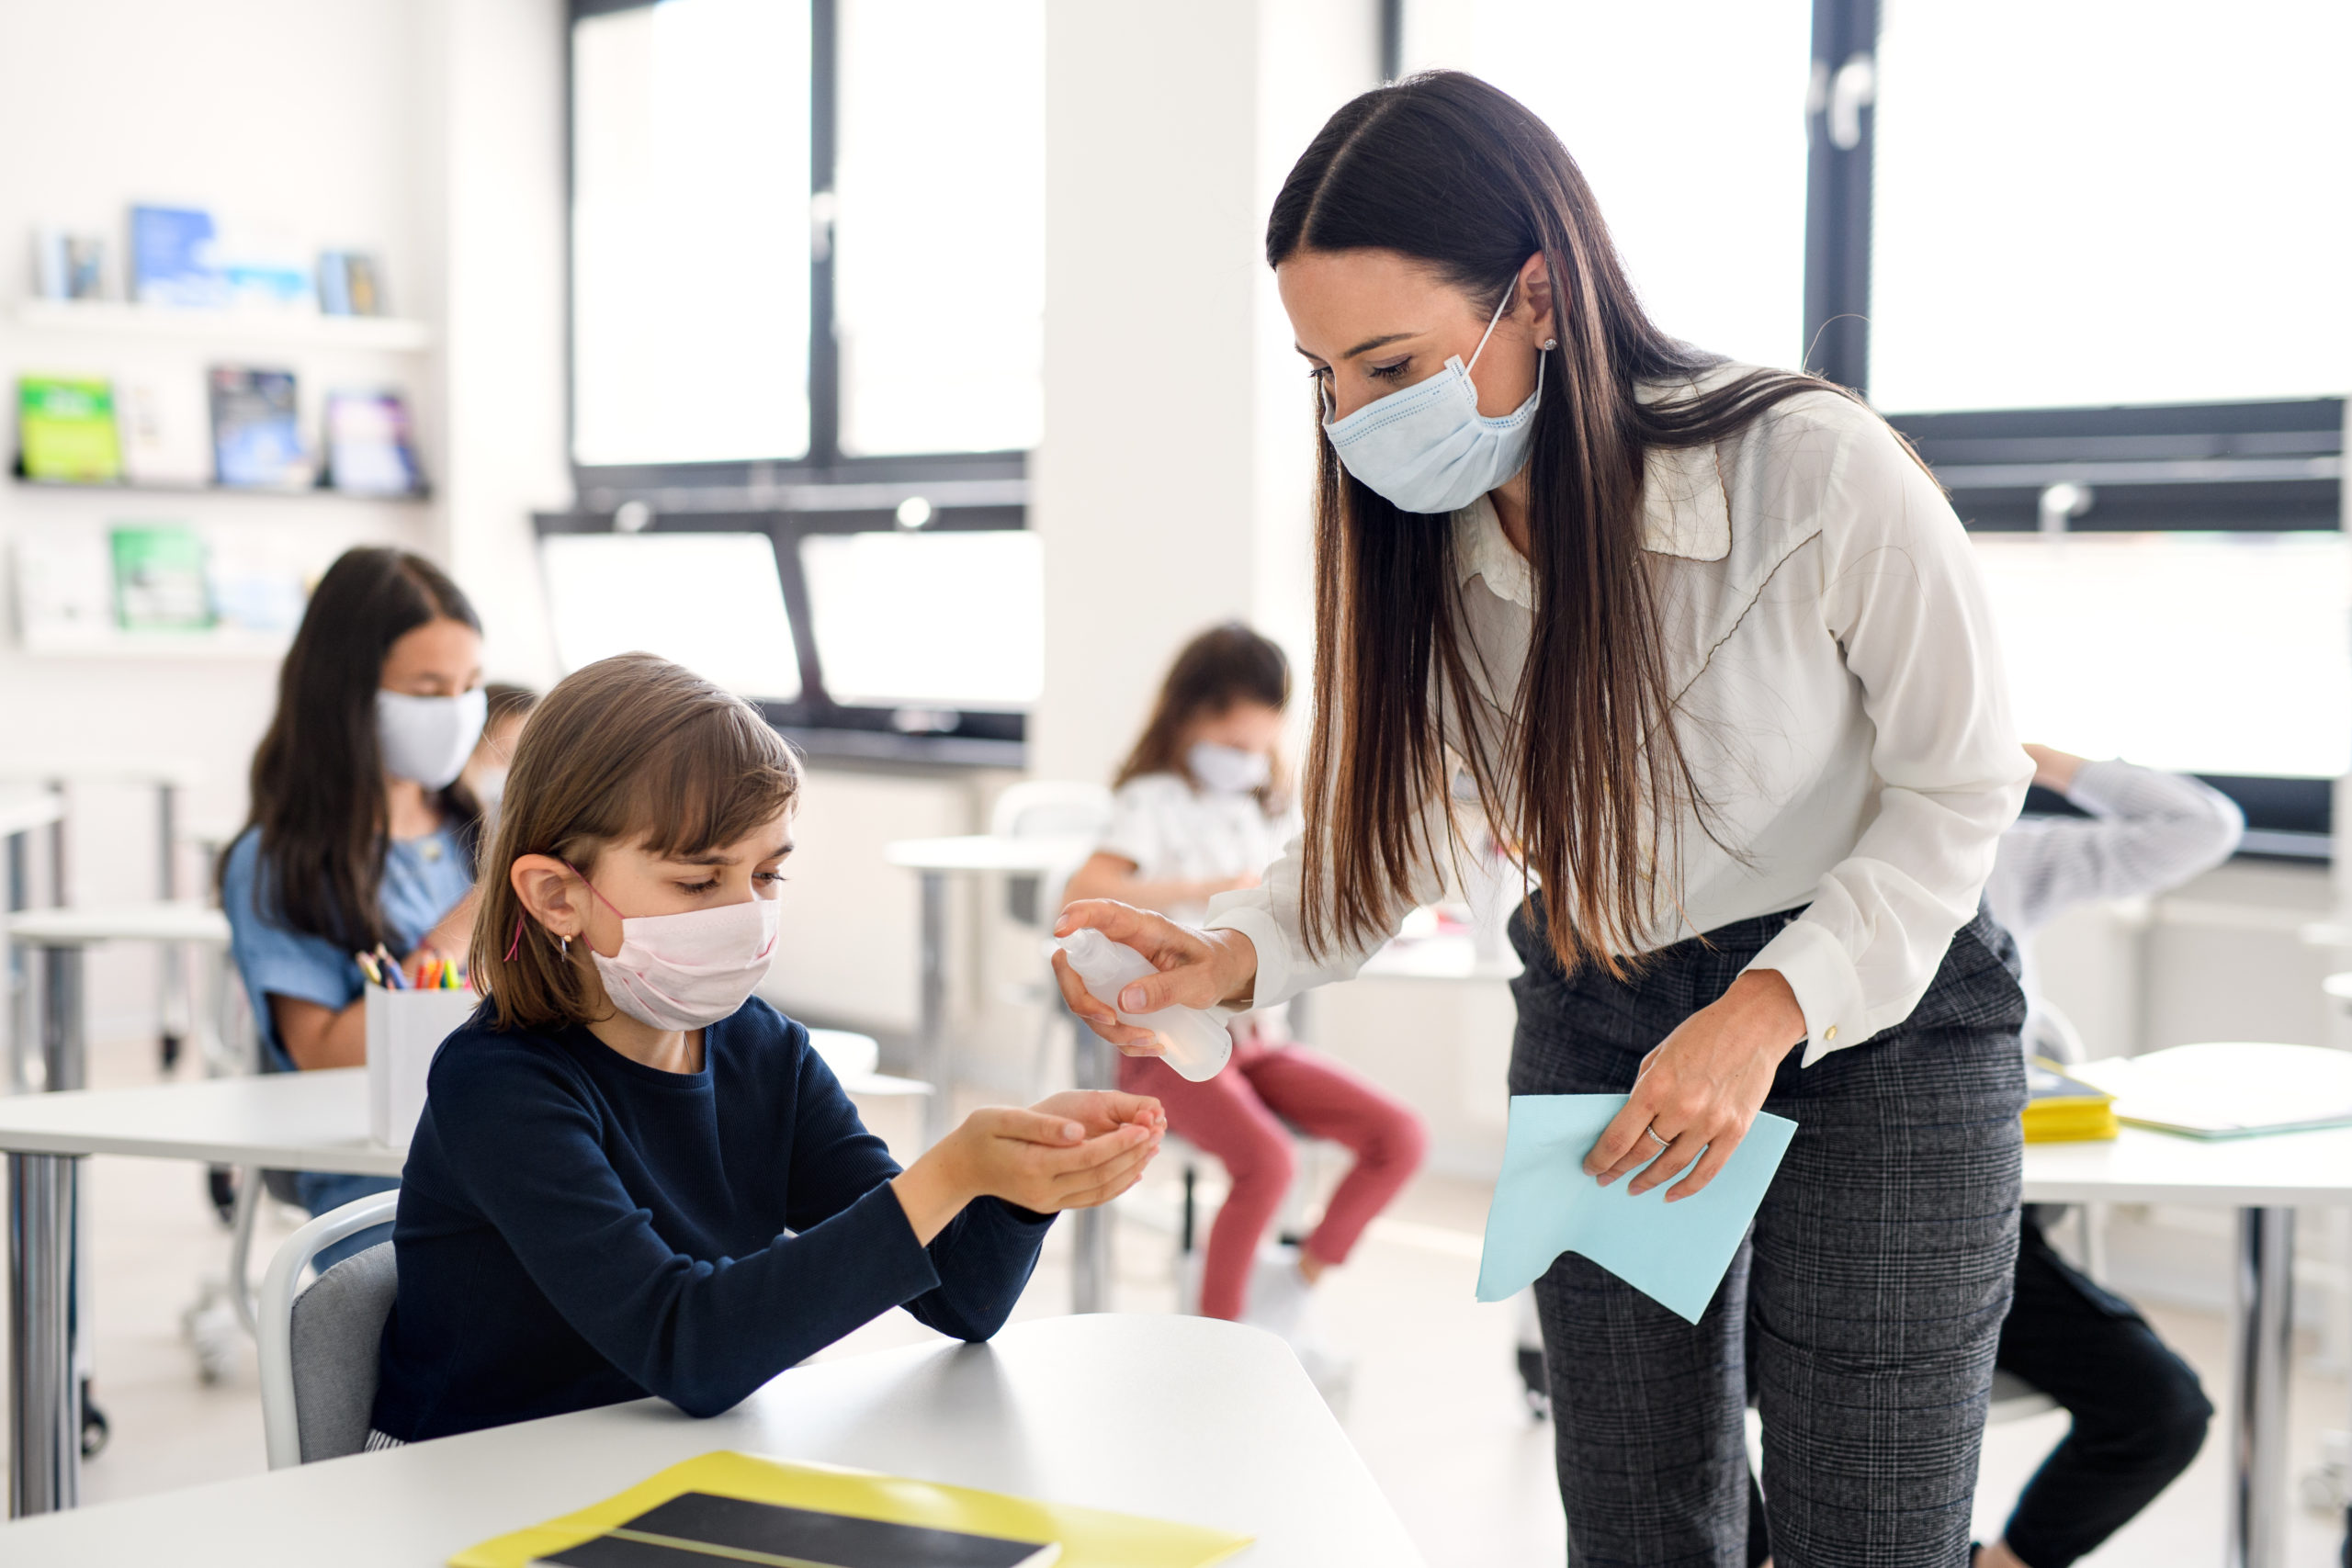 Masks are now mandatory for students and staff inside high schools and middle schools in B.C.